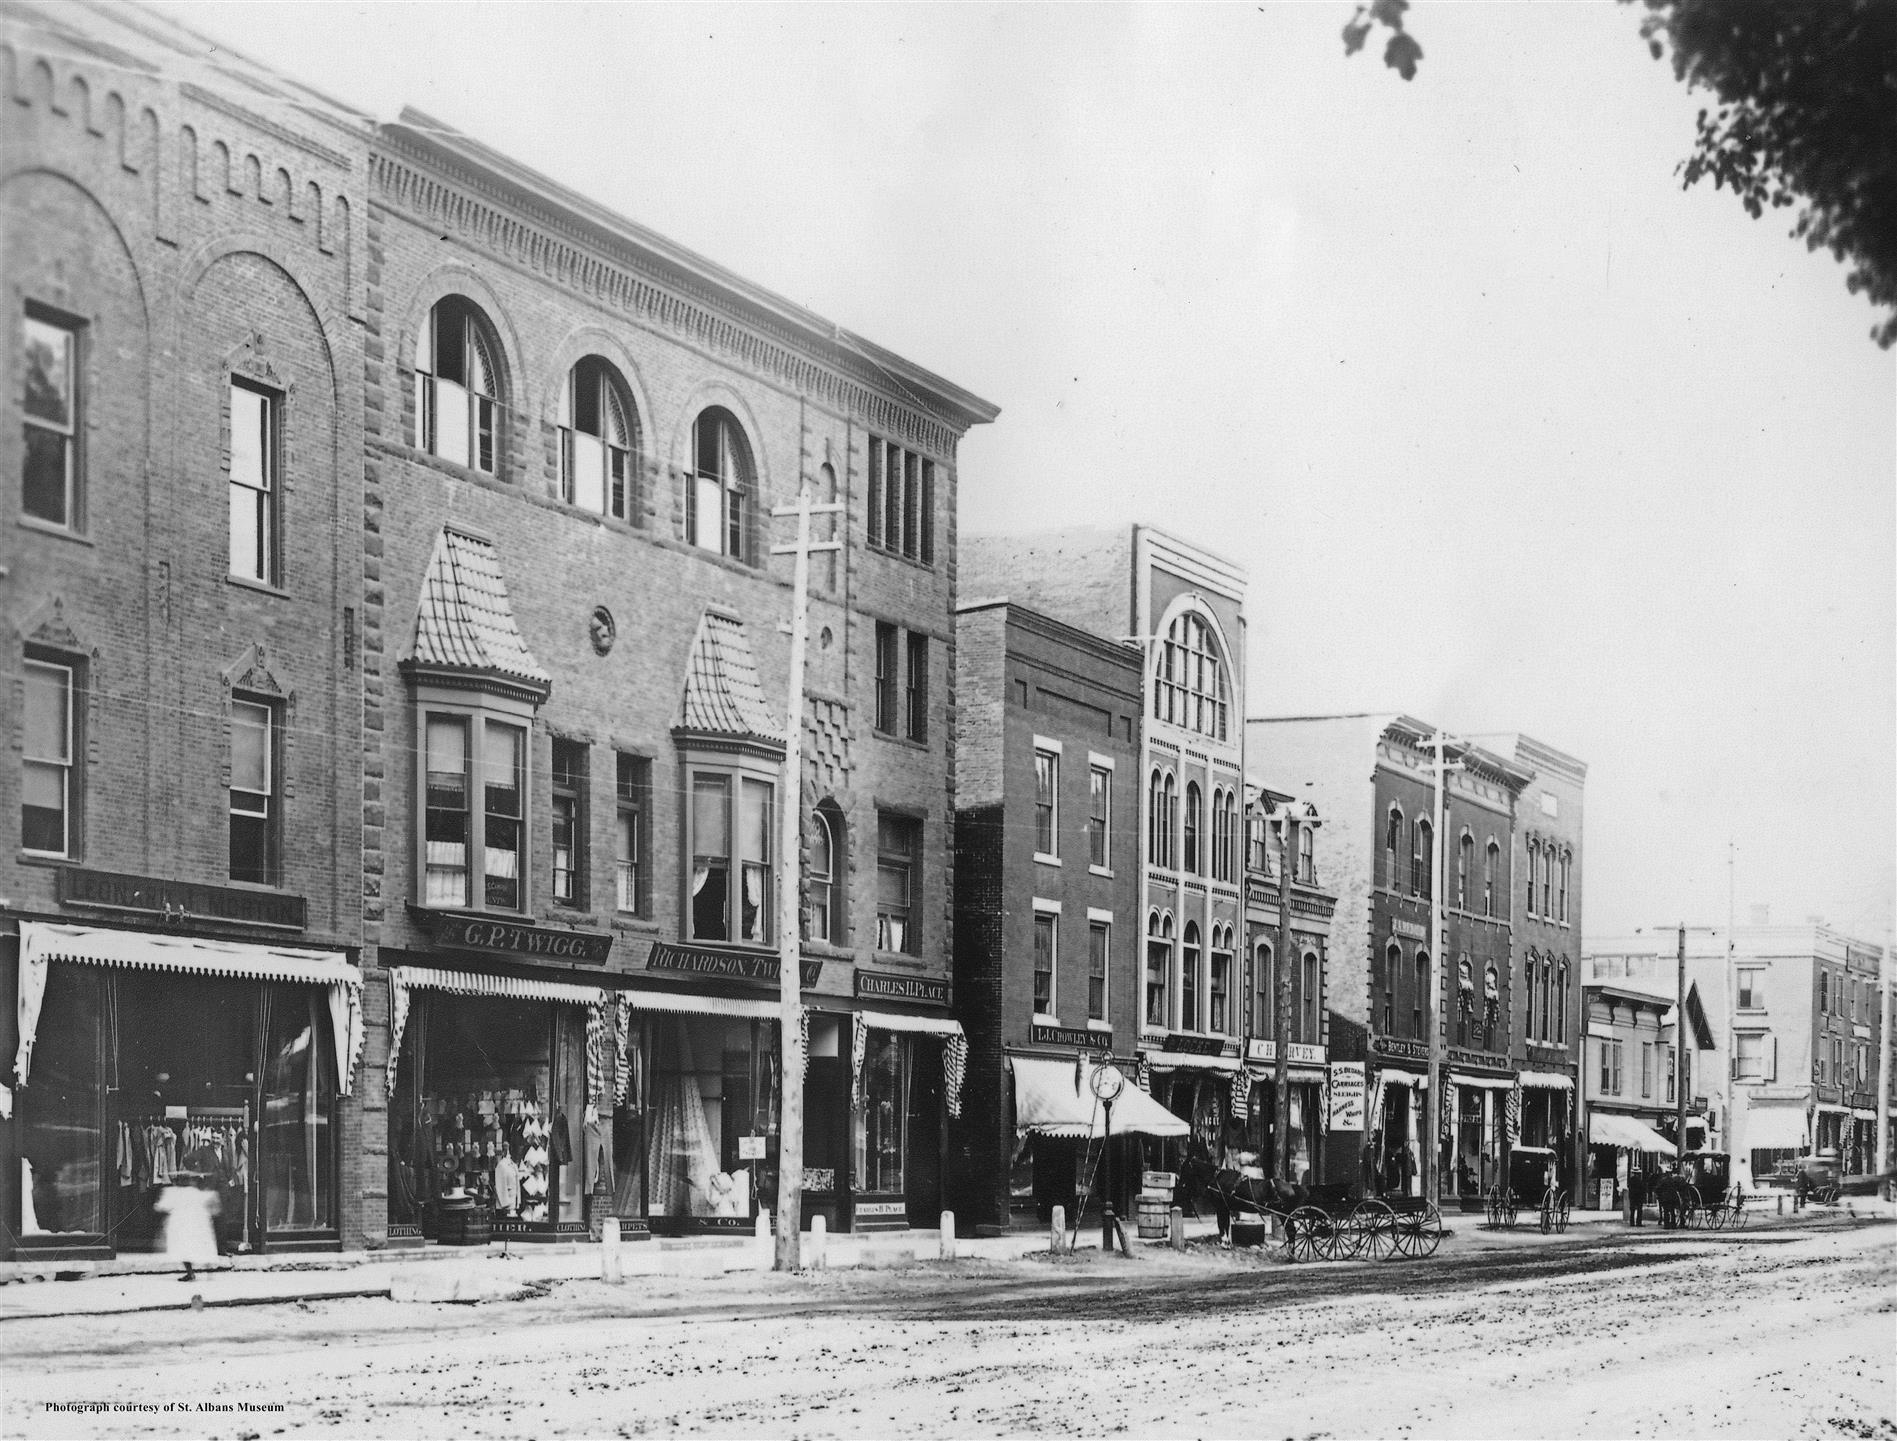 an old black and white picture of the clothier storefront